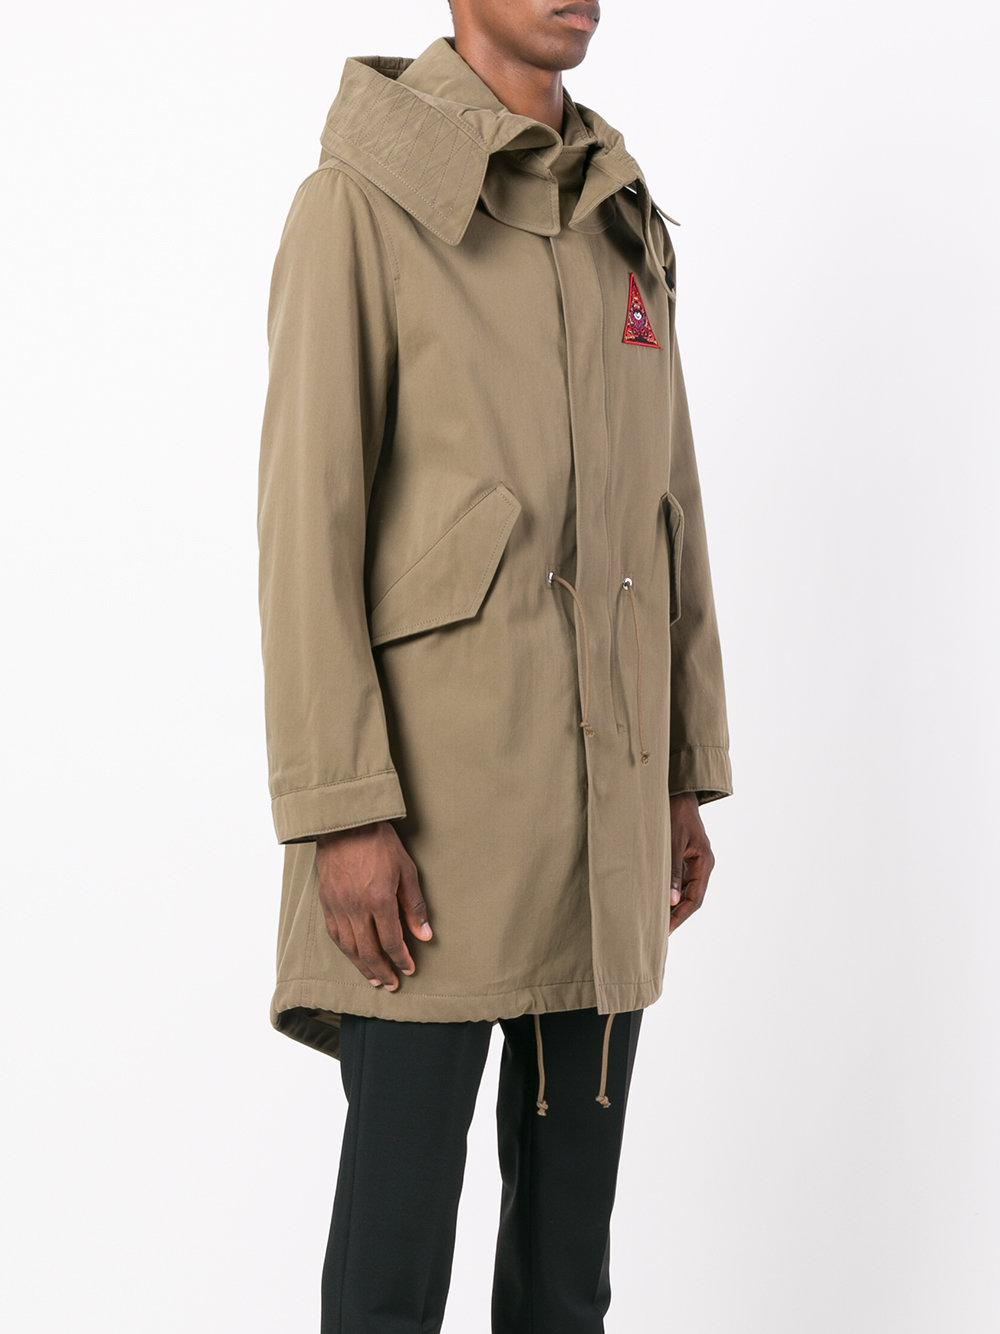 Givenchy Cotton Illuminati Patch Parka Jacket in Green for Men